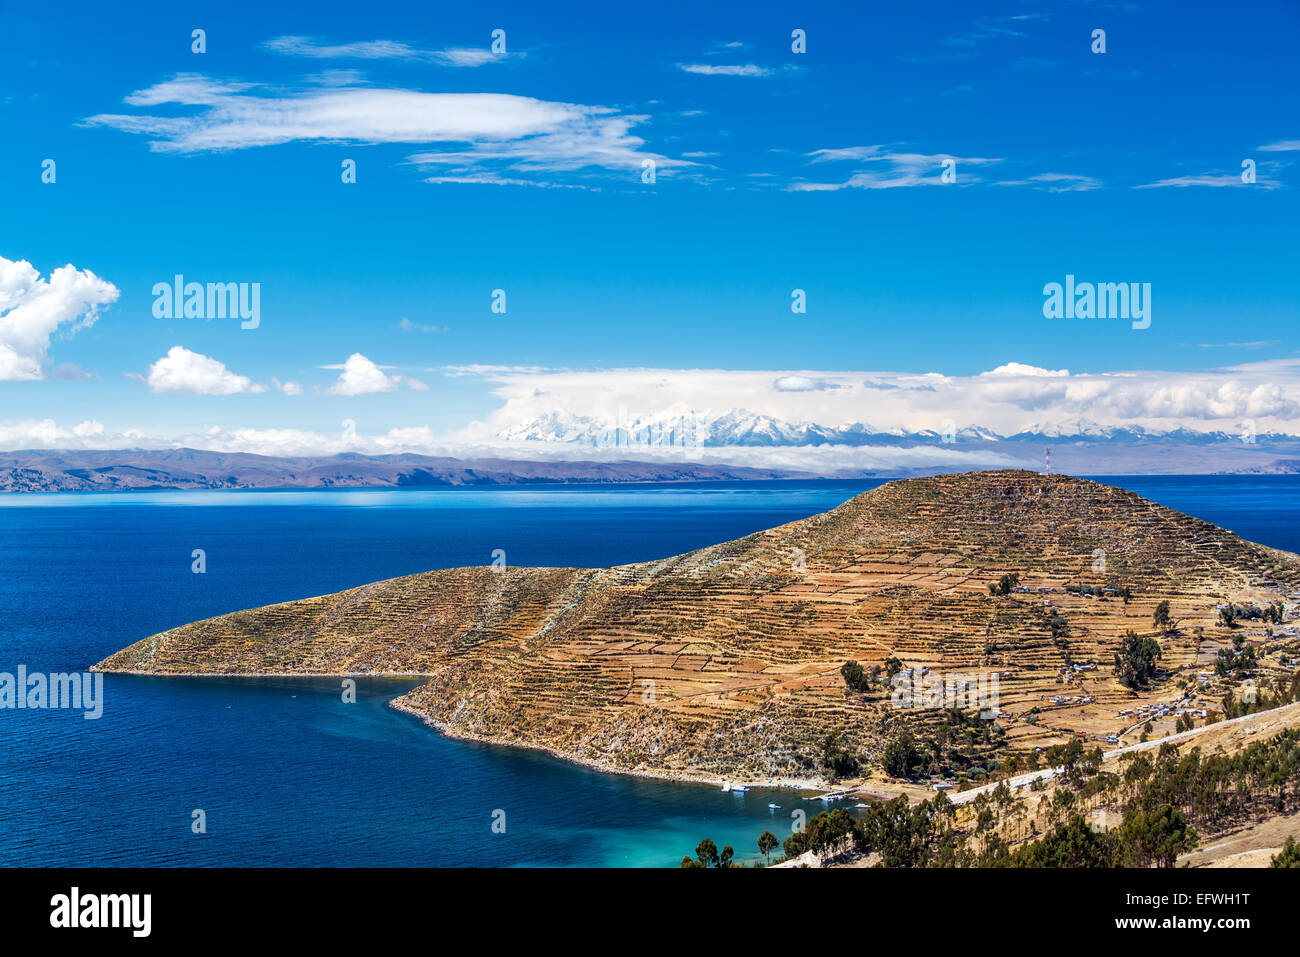 Terraced landscape of Isla del Sol with Andes mountains in the background on the Bolivian side of Lake Titicaca - Stock Image